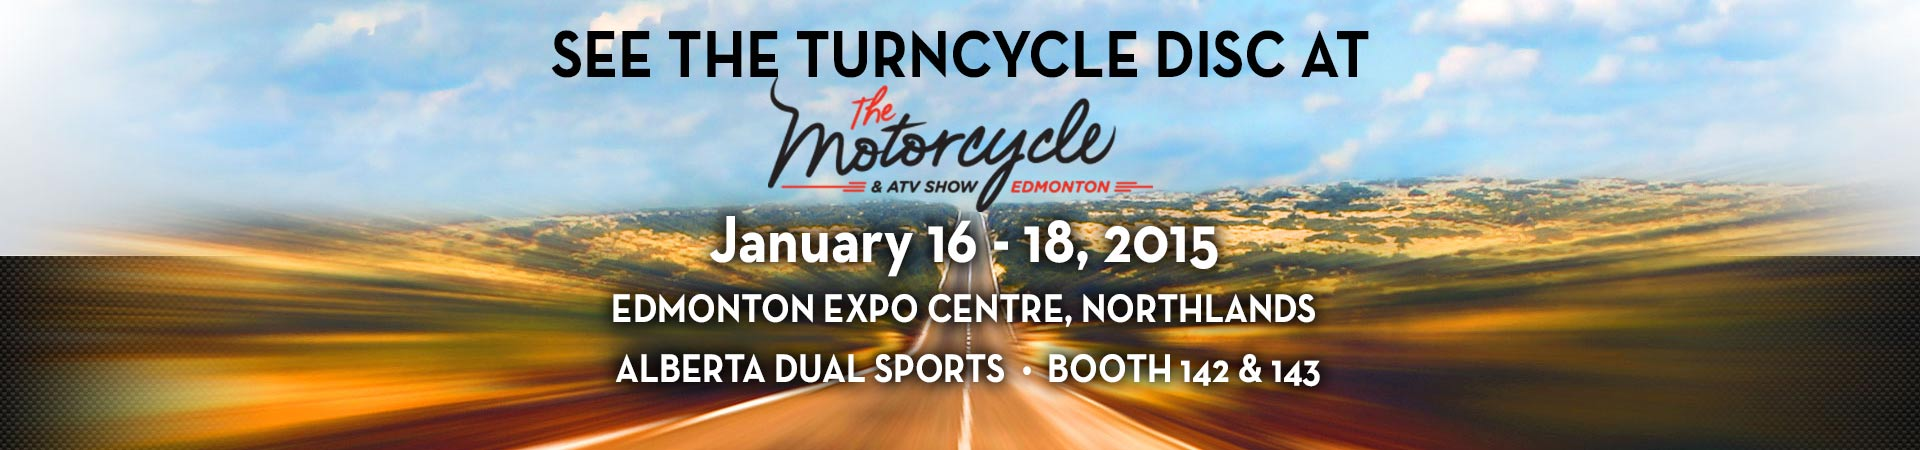 Turncycle at Edmonton Motorcycle Show banner